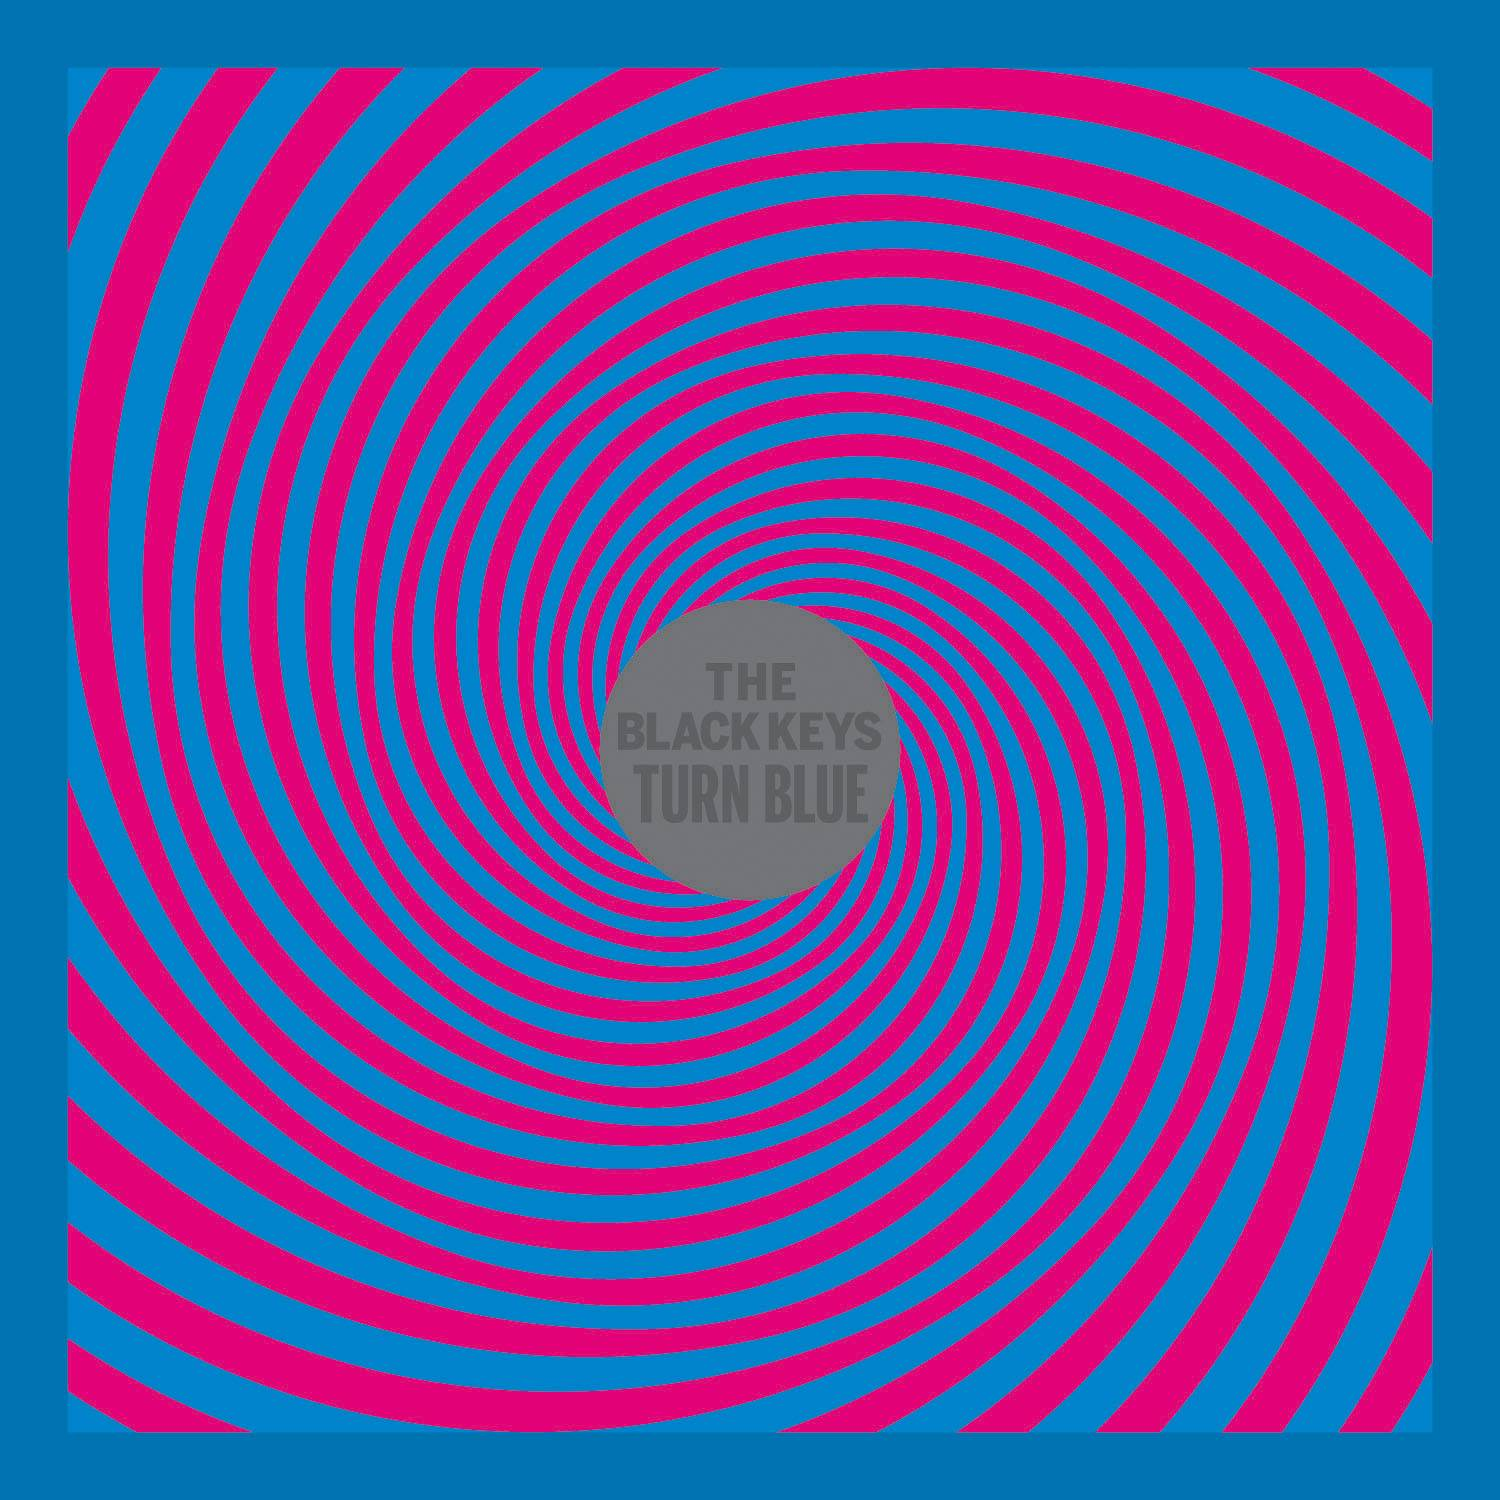 """Turn Blue"" is the eighth album released by The Black Keys."